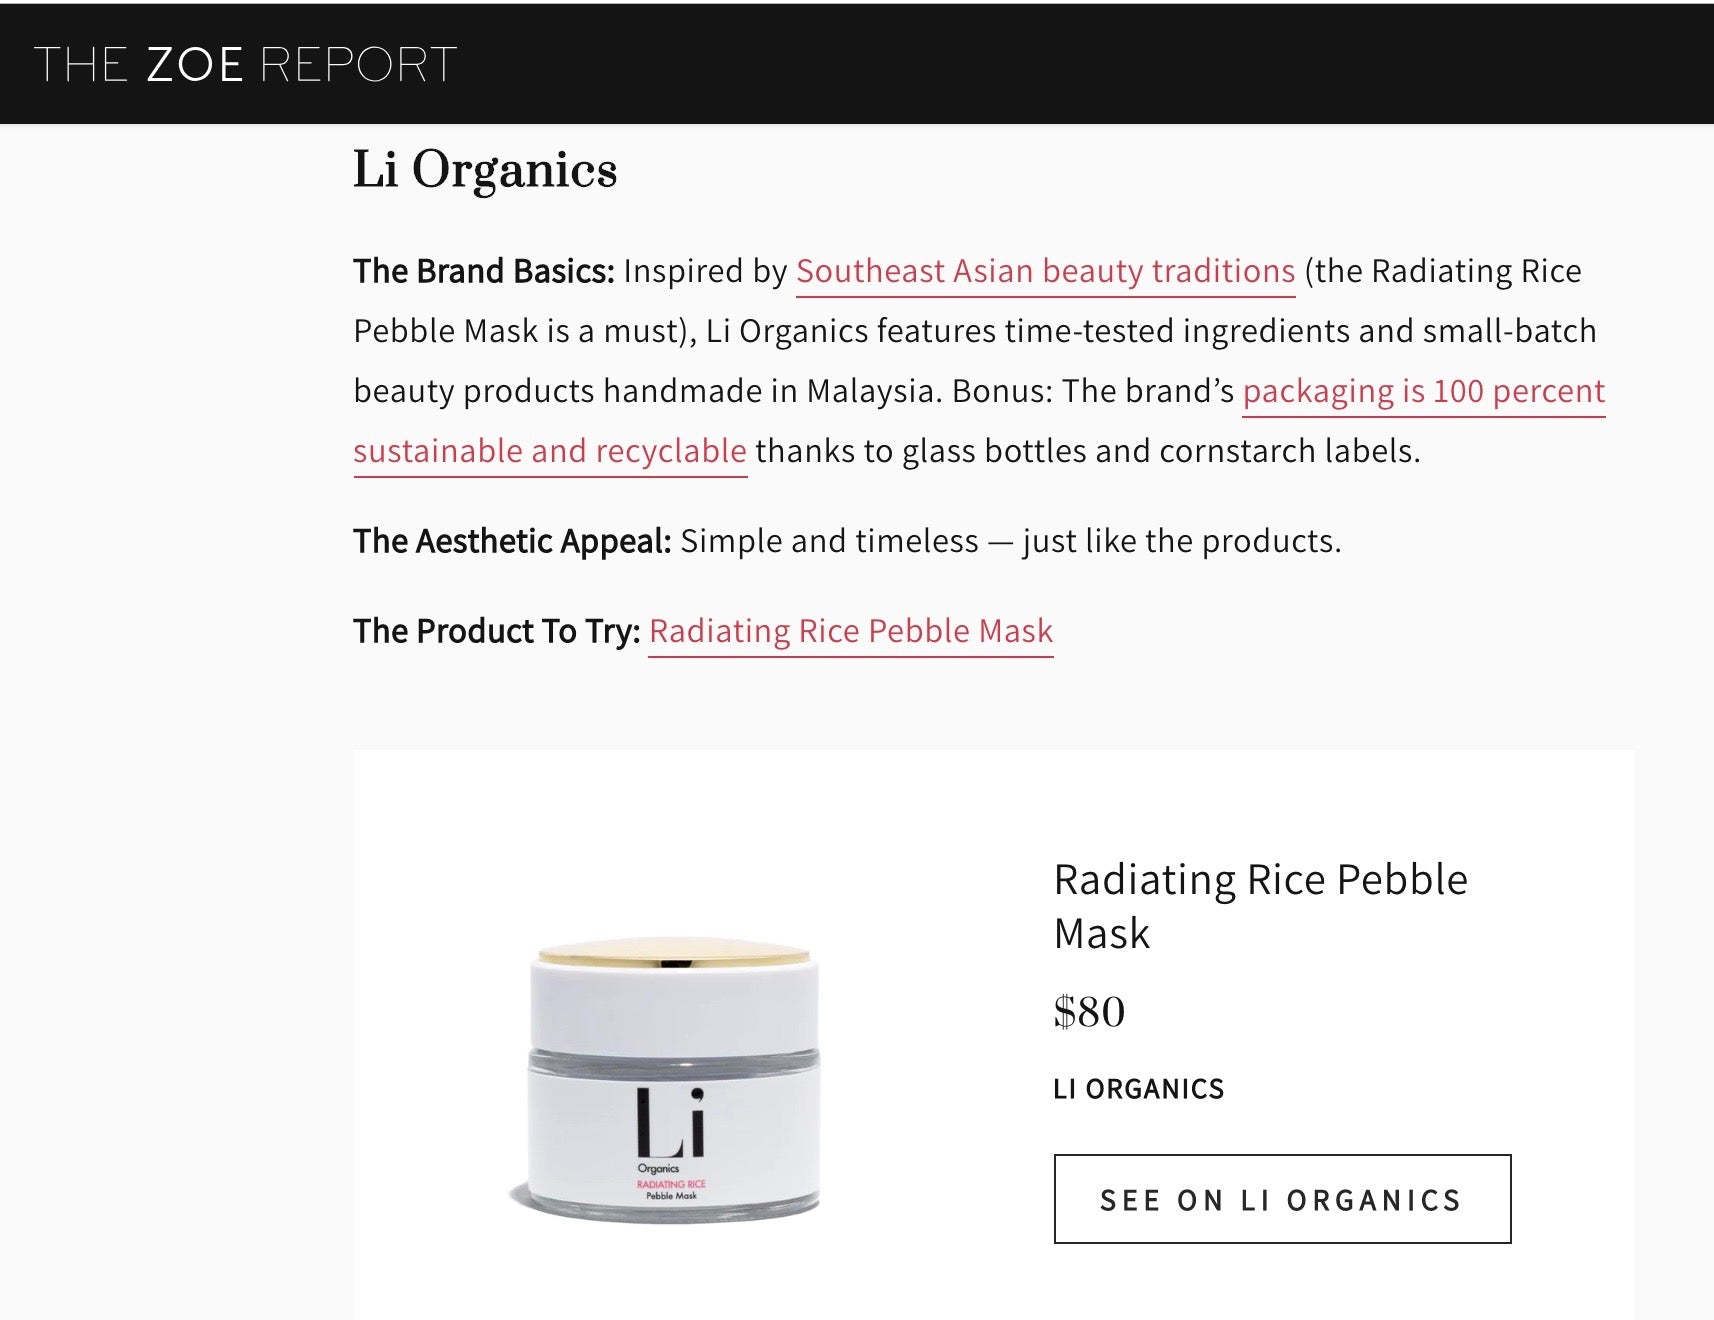 Li Organics on The Zoe Report, 2019's Brands to Look Out For